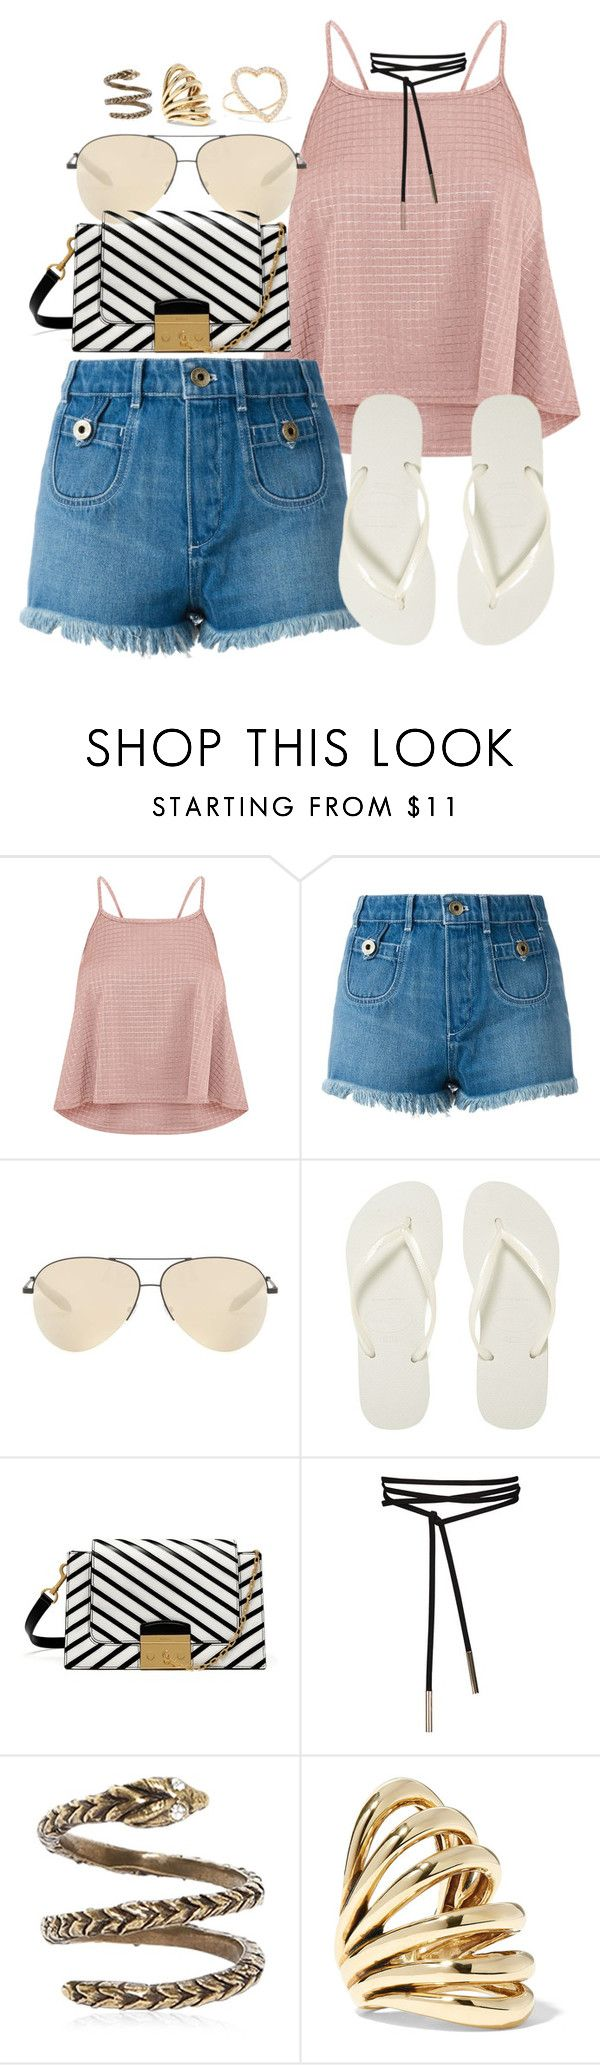 """""""Mulberry x Chloe"""" by muddychip-797 ❤ liked on Polyvore featuring Chloé, Victoria Beckham, Havaianas, Mulberry, Yves Saint Laurent, Lisa Eisner, Jennifer Meyer Jewelry, NYC, vacation and mulberry"""